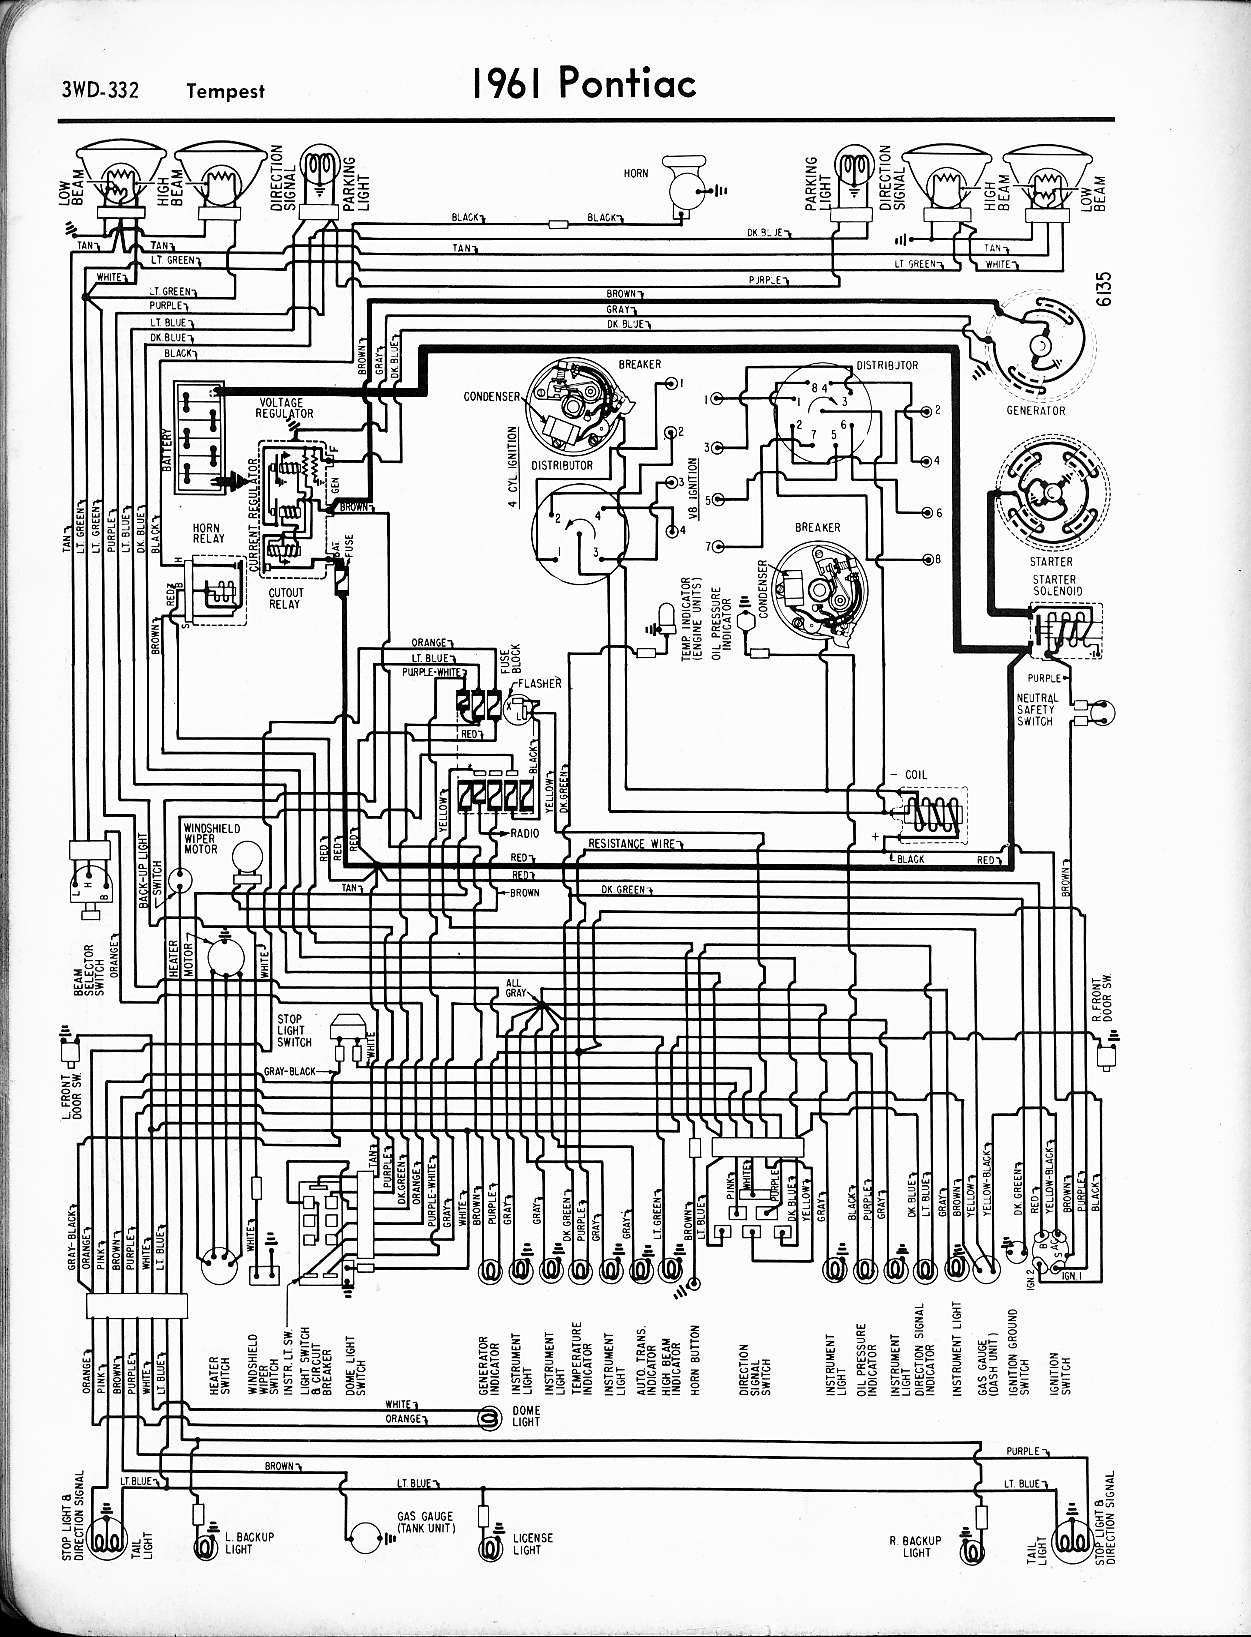 controller circuit diagram for a cruise with Mitsubishi Triton Wiring Diagram Tail Lights on Mitsubishi Triton Wiring Diagram Tail Lights furthermore Murphy Mls Series Liquid Level Switch 2 In Npt Mls 020 likewise 2015 06 01 archive further Showthread furthermore 2000 Ford F 150 Wiring Diagram.